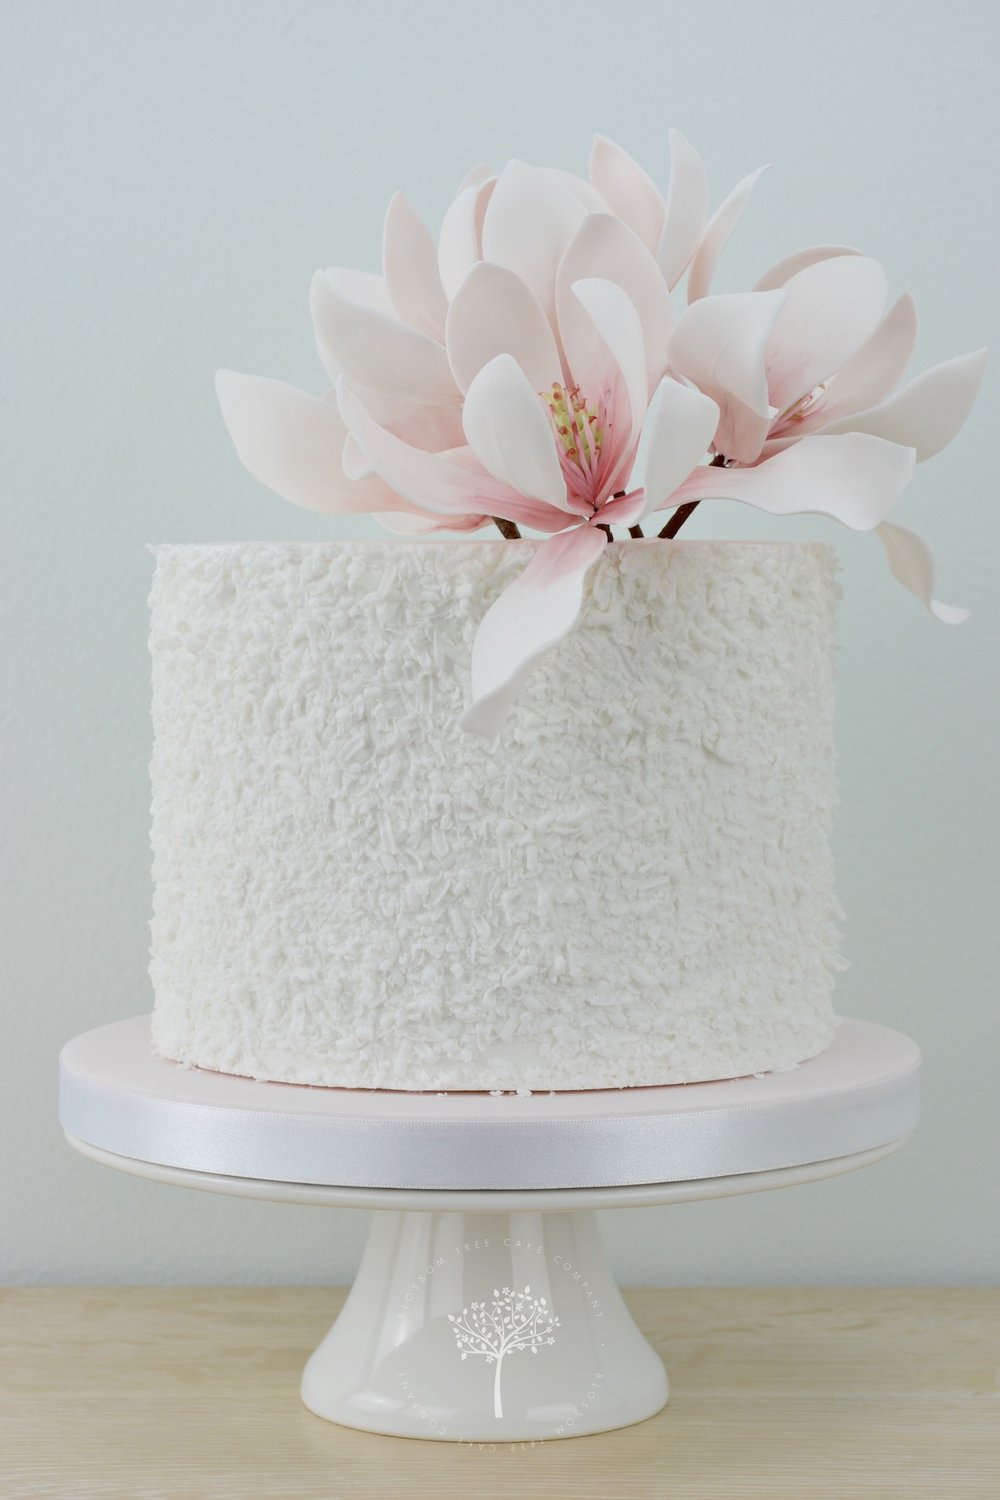 Magnolia celebration cake by Blossom Tree Cake Co Harrogate North Yorkshire.jpg